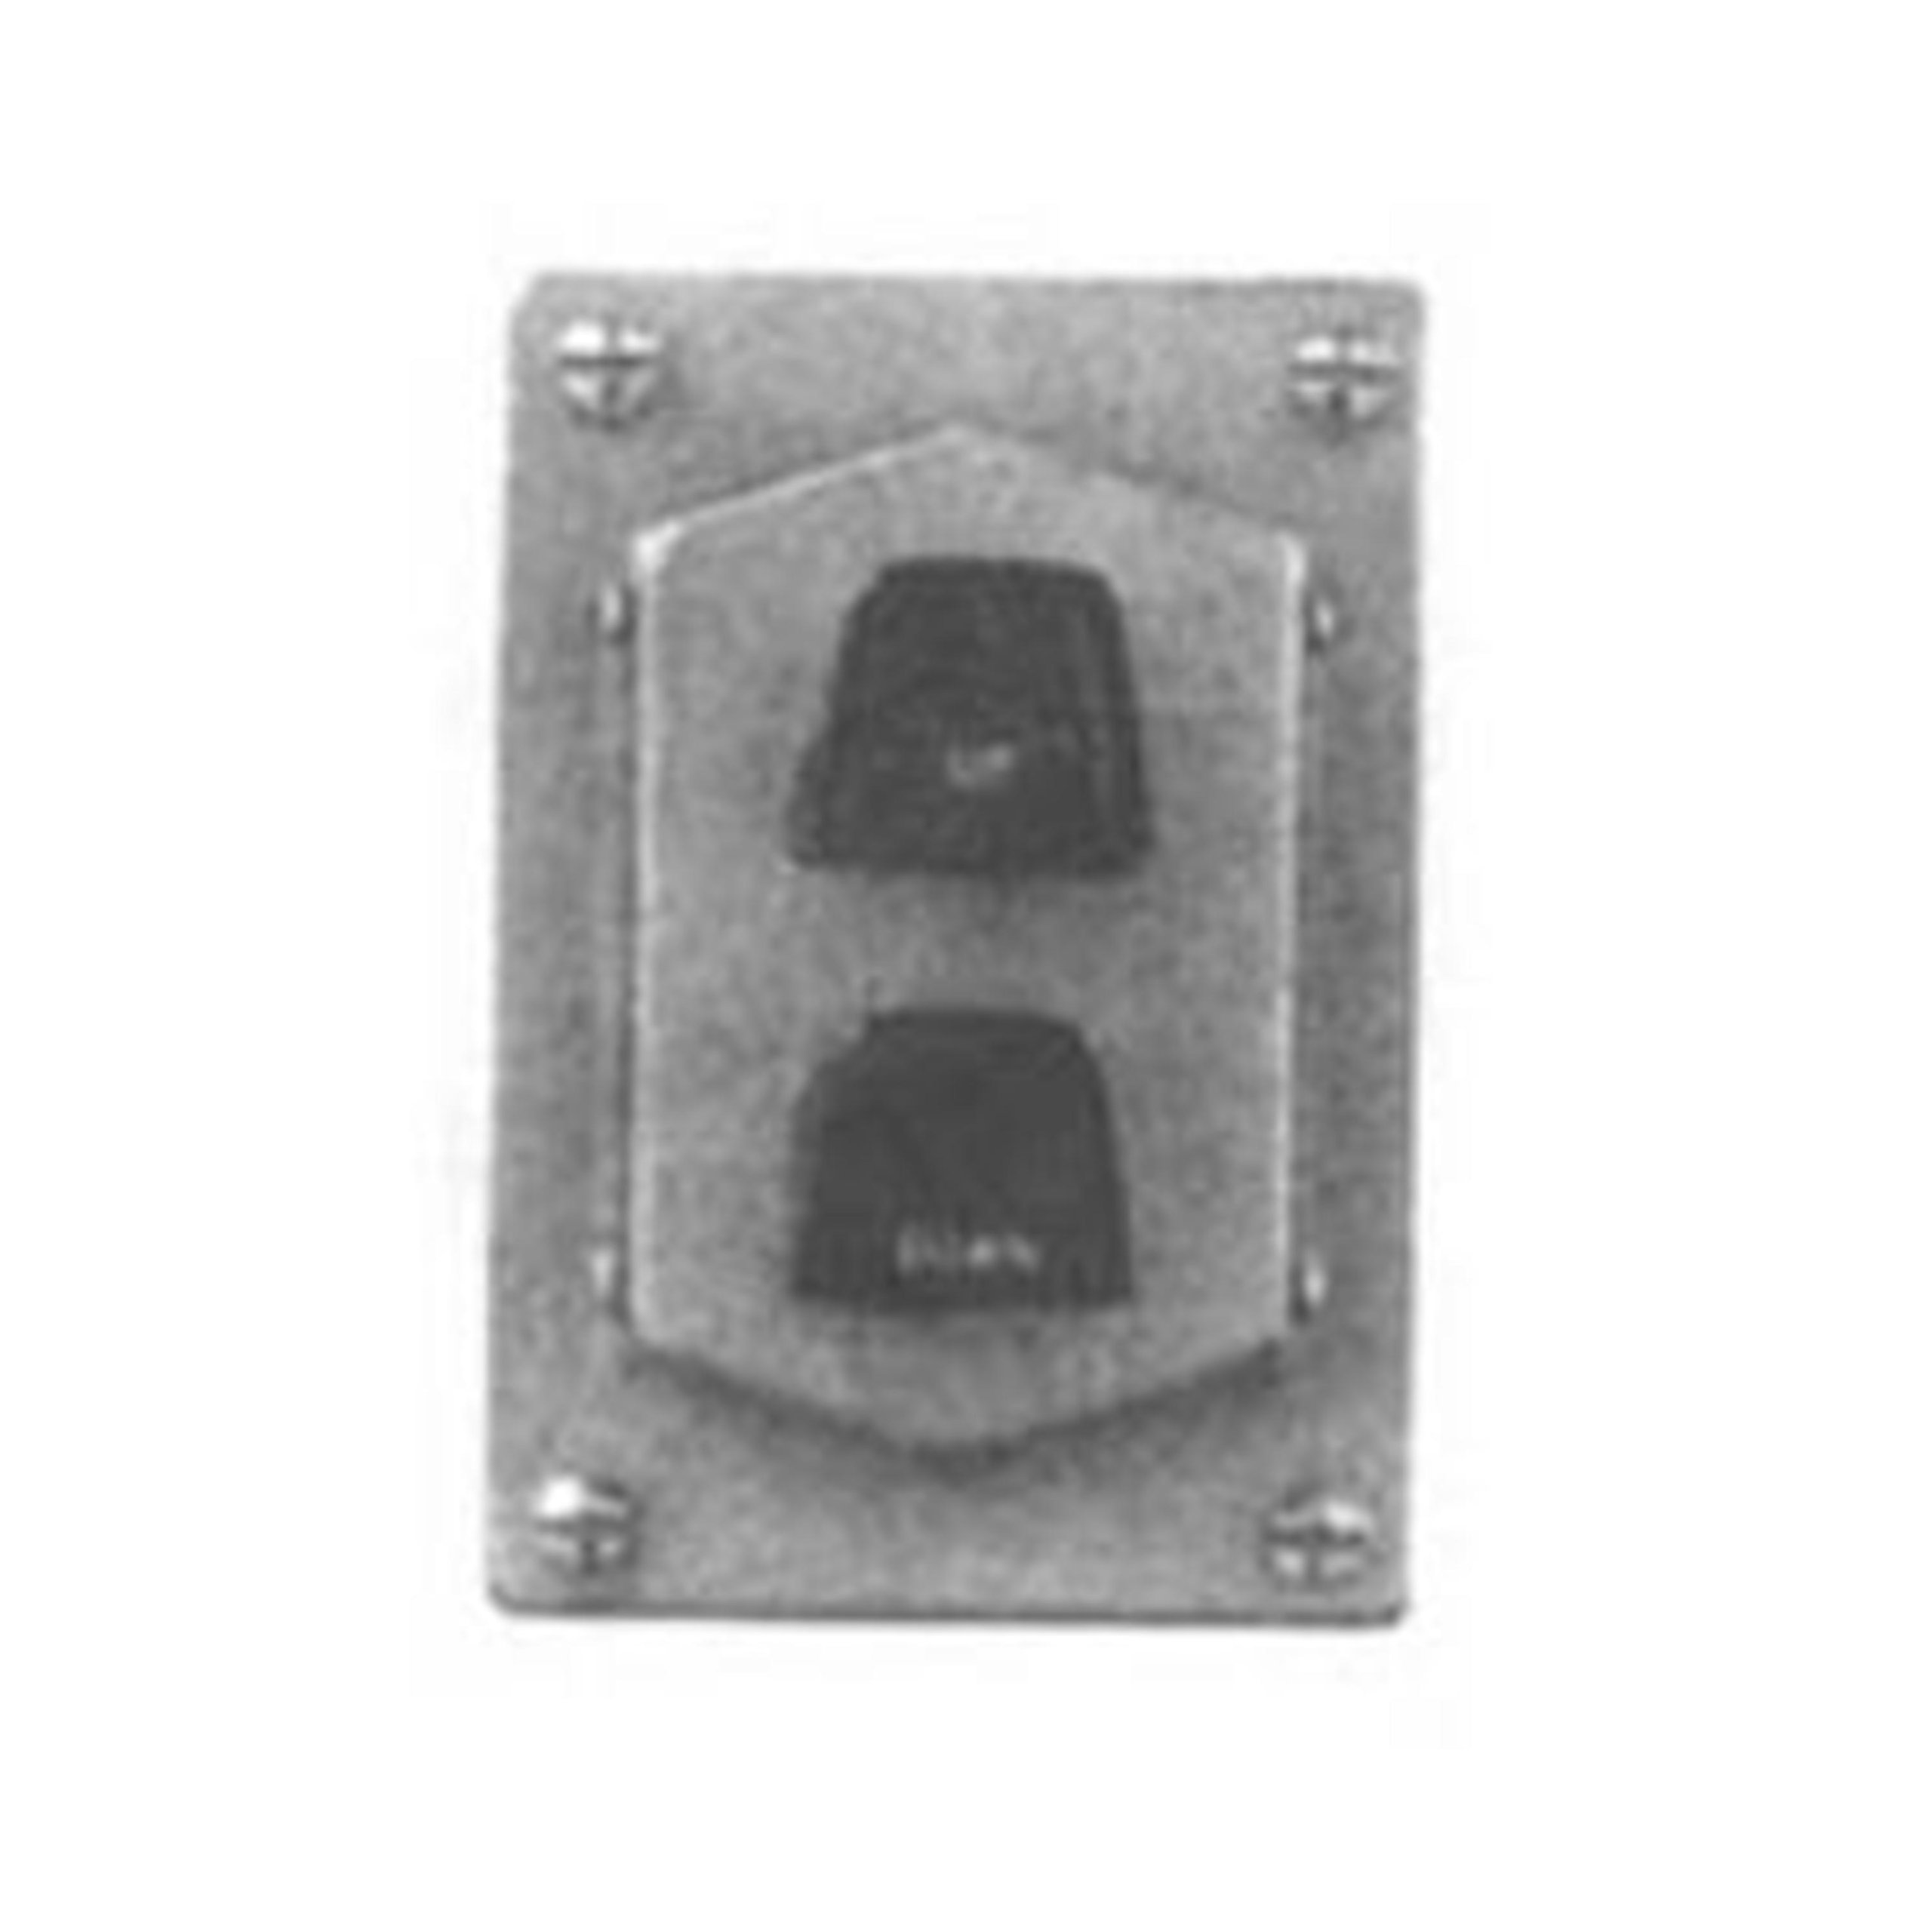 Crouse-Hinds DSD922 2-Circuit Start/Stop Front Operated Push Button Station by Crouse-Hinds